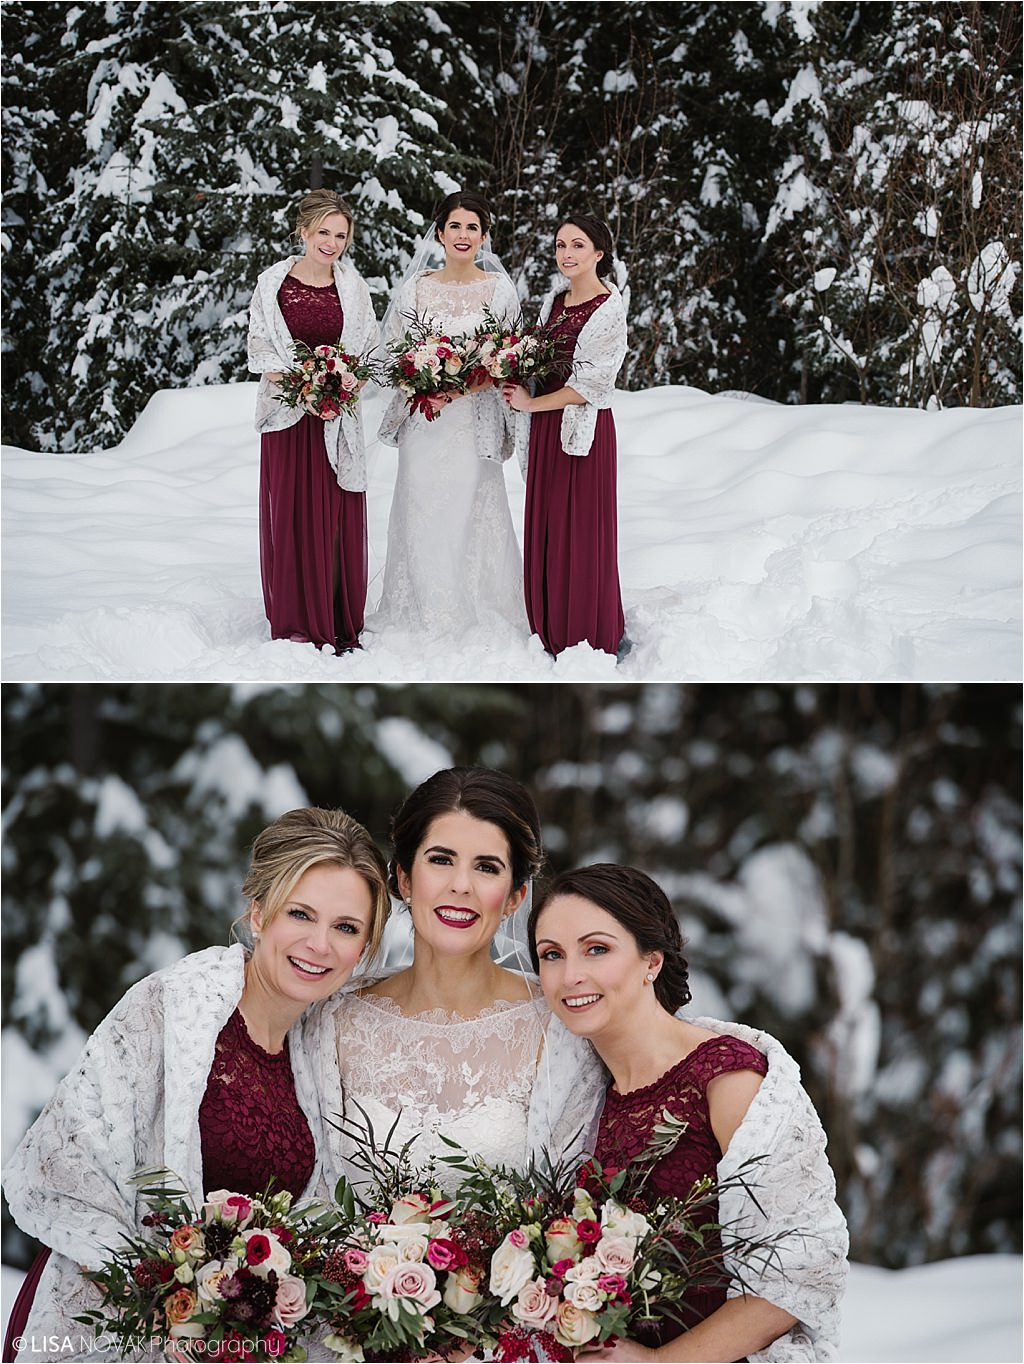 Destination winter wedding Sun Peaks Resort bridesmaids fur stole burgundy dresses